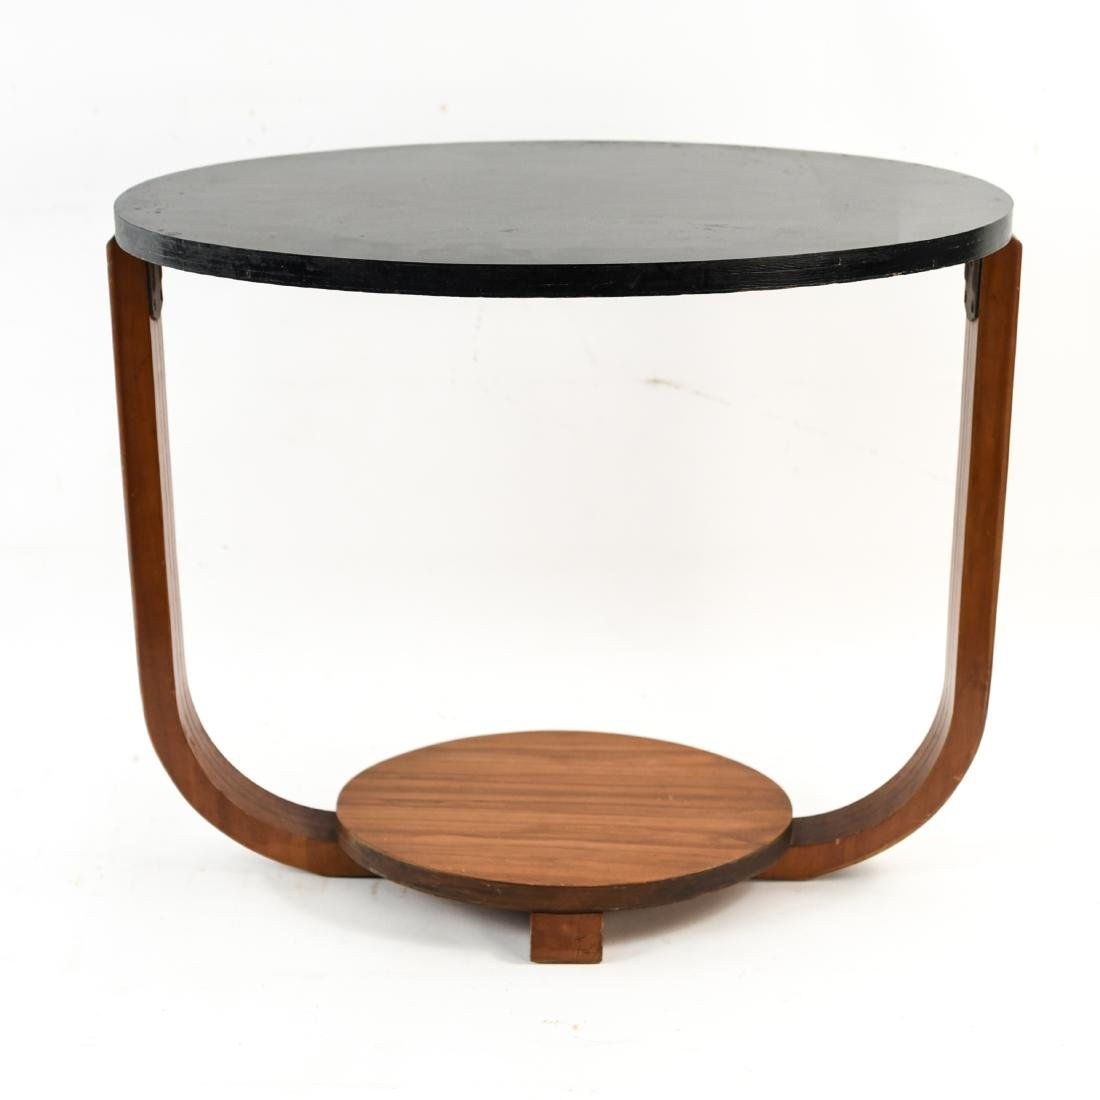 ART DECO STYLE SIDE TABLE